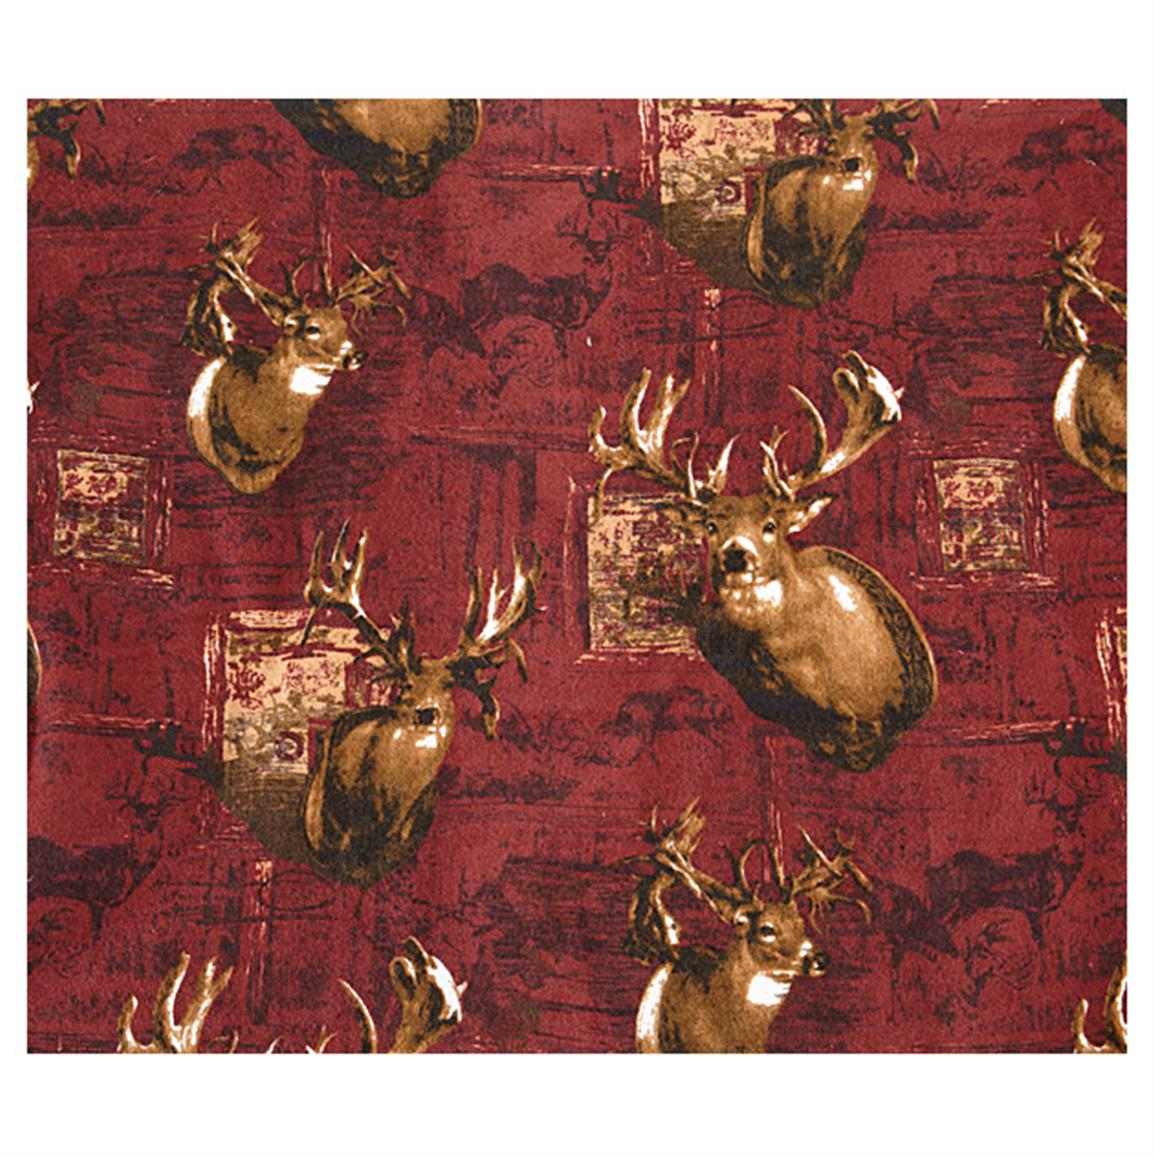 Soft and warm Deer-print flannel lining